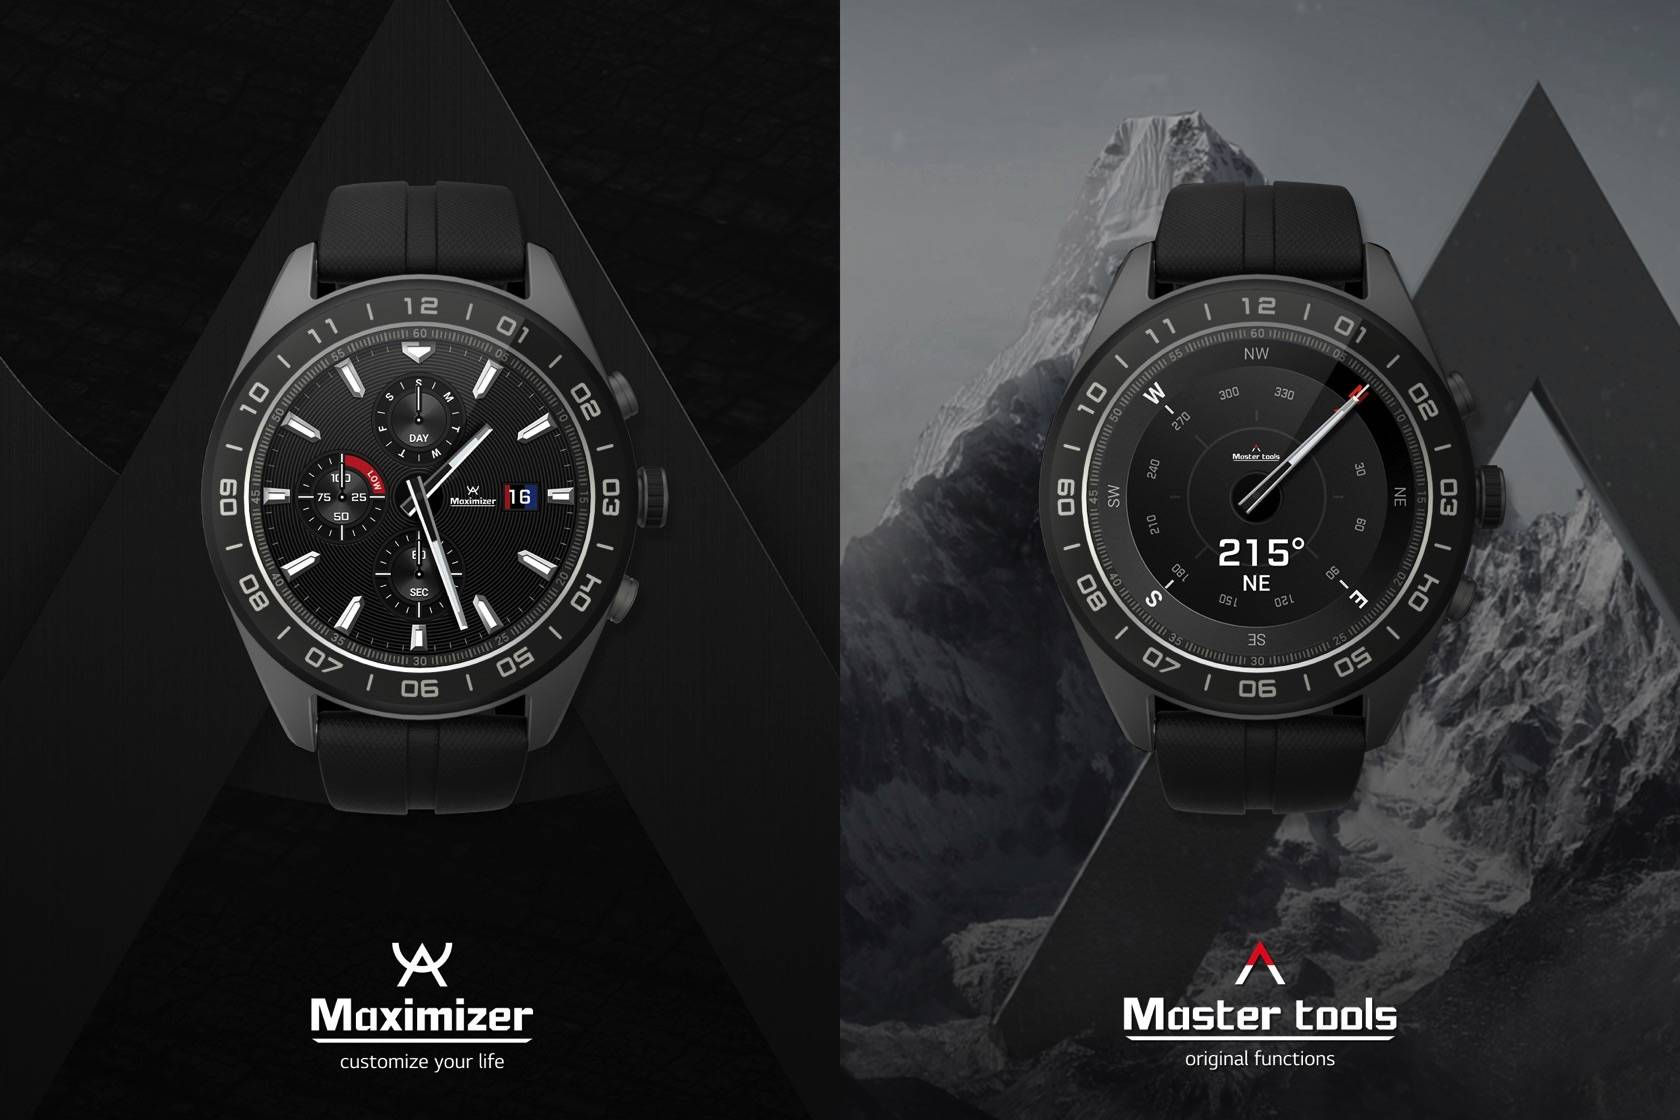 LG Watch W7: Wear OS gets mechanical hands - Android Community